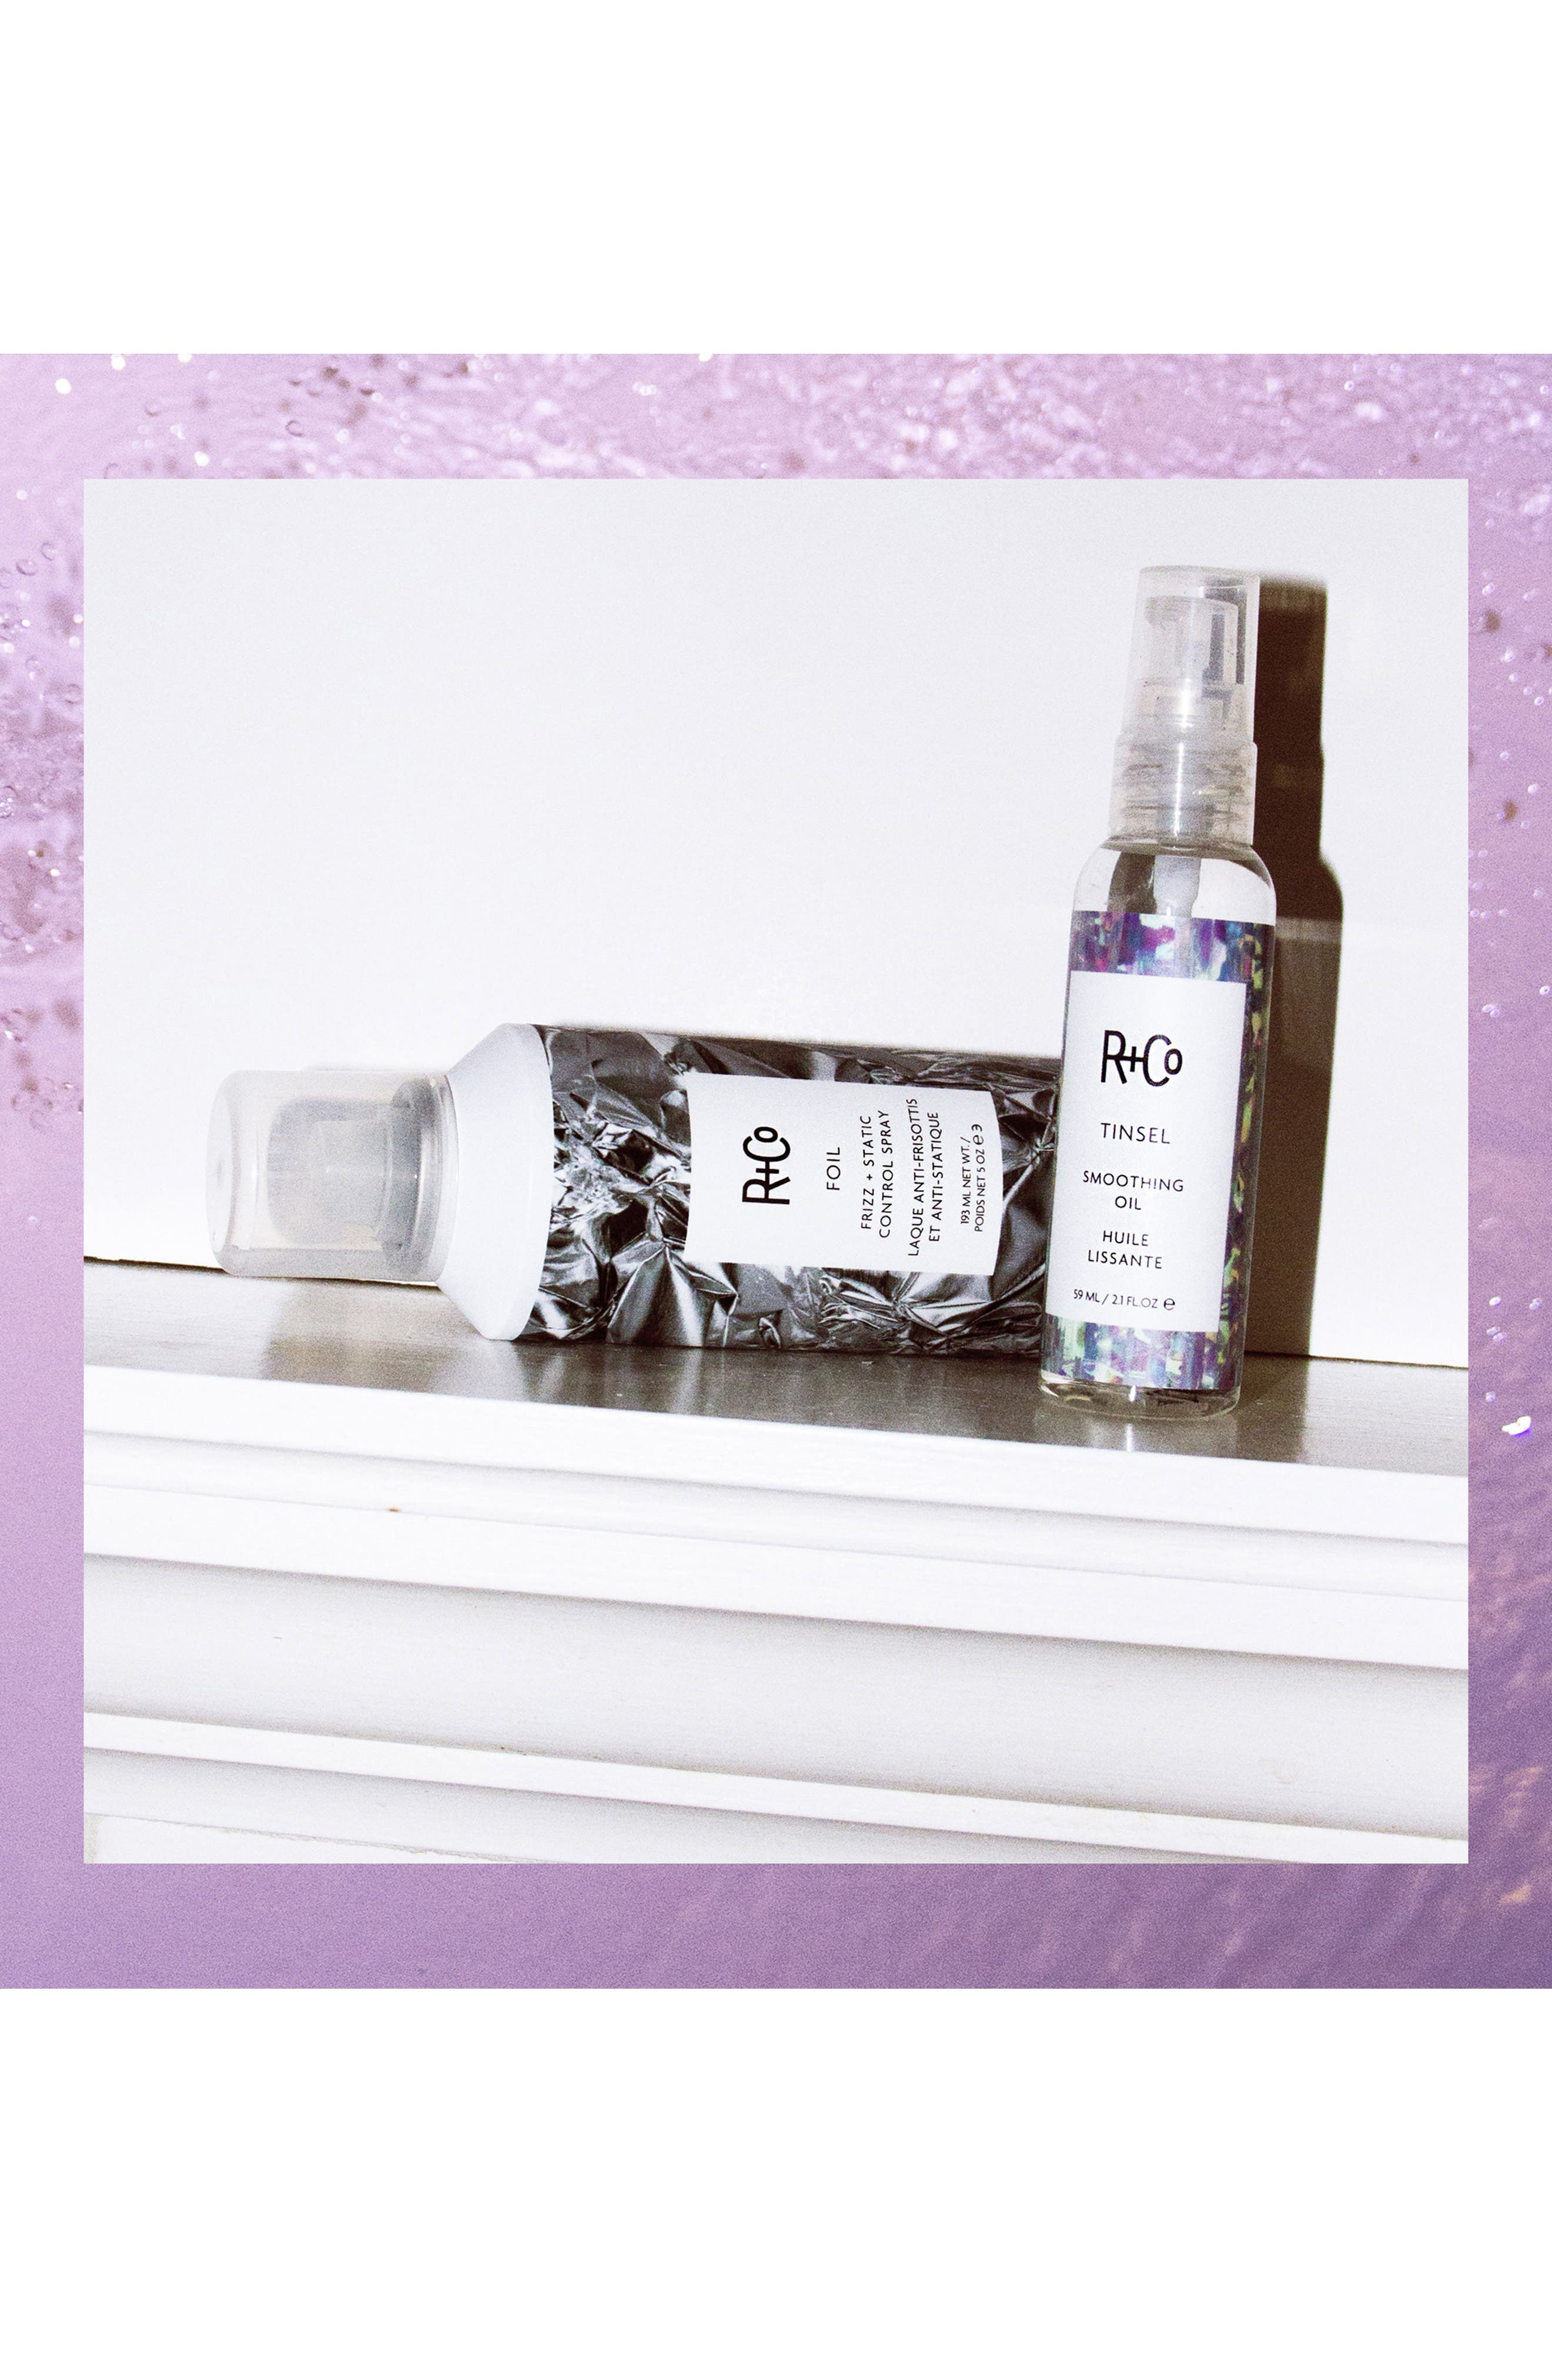 R+CO, SPACE.NK.apothecary R+Co Tinsel Smoothing Oil, Alternate thumbnail 5, color, NO COLOR